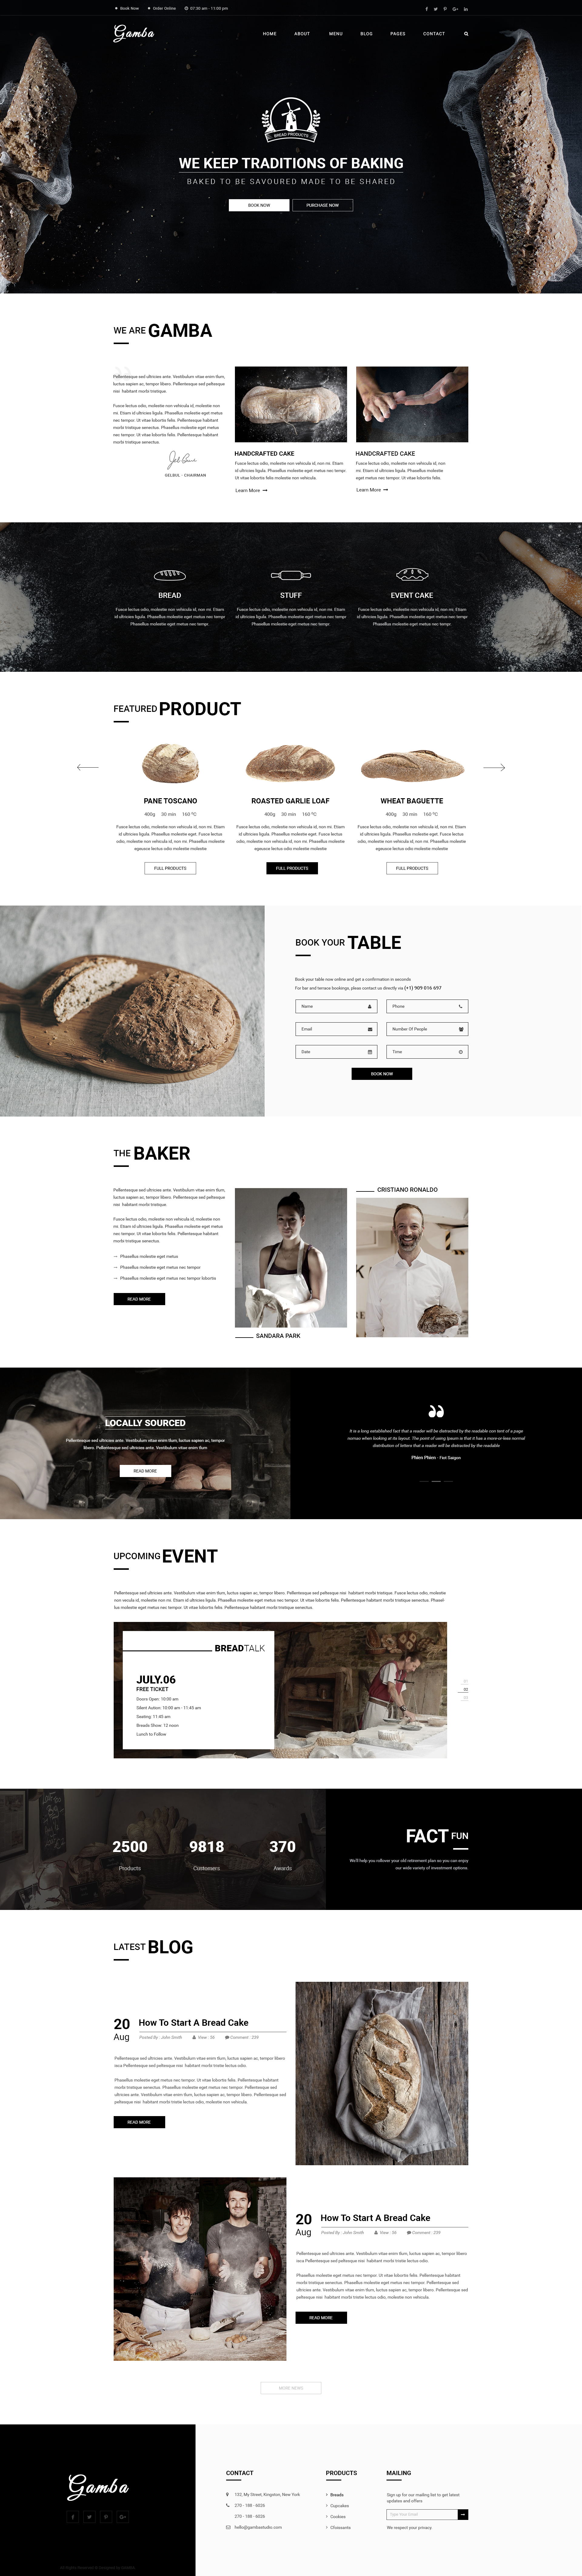 Gamba bakery cakery pizza pastry shop psd template pastry gamba bakery cakery pizza pastry shop psd template pronofoot35fo Images